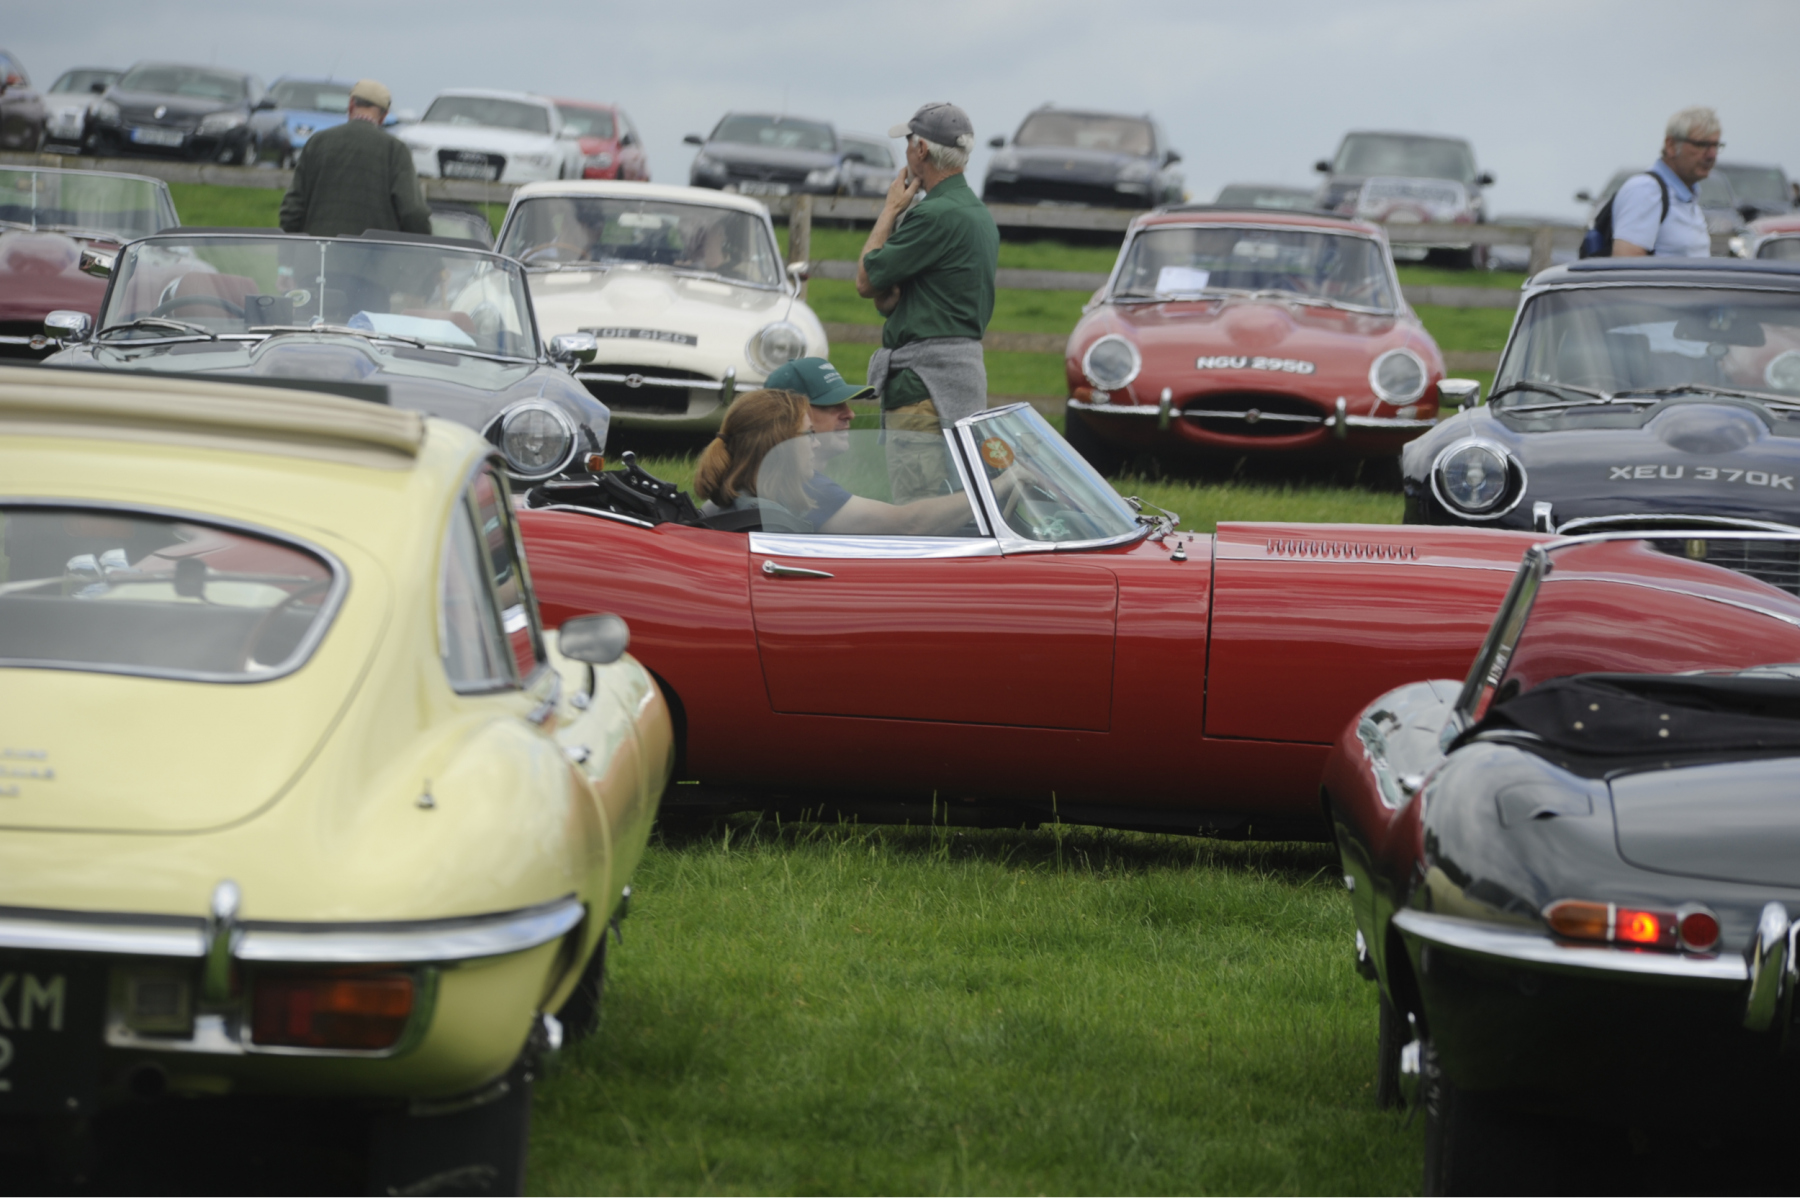 E-type-60-Saturday-photo-by-Abigail-Humphries-240